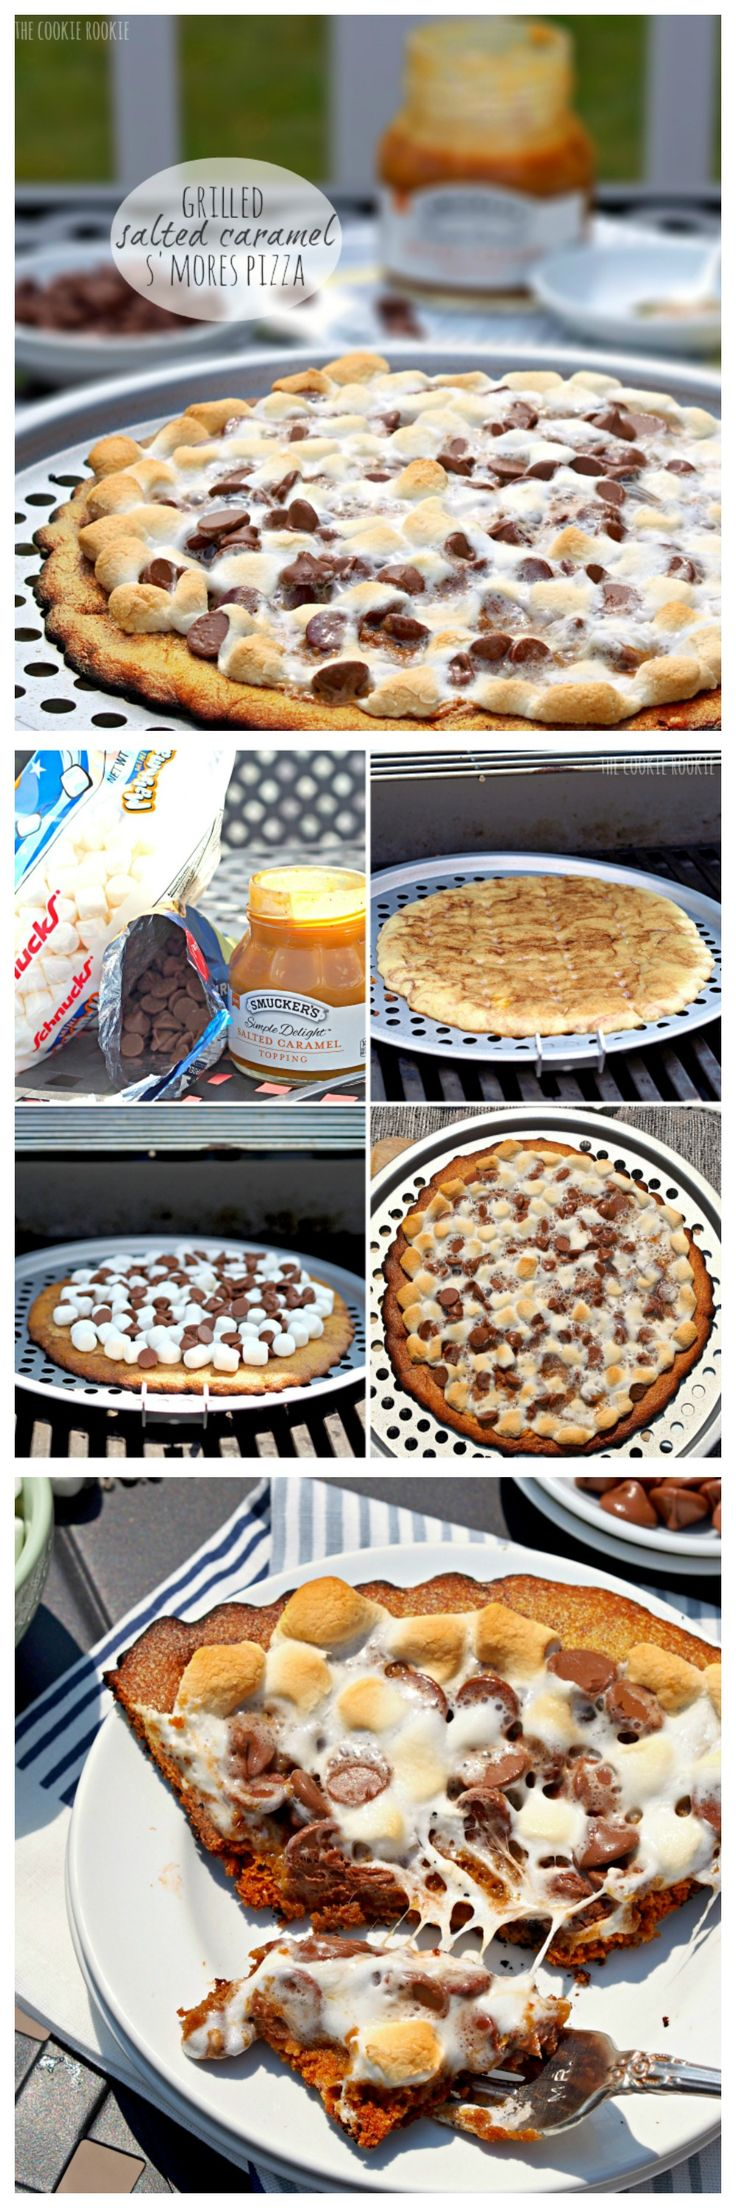 Grilled S'mores Pizza with Snickerdoodle Crust and Salted Caramel Sauce! Amazing.  - The Cookie Rookie